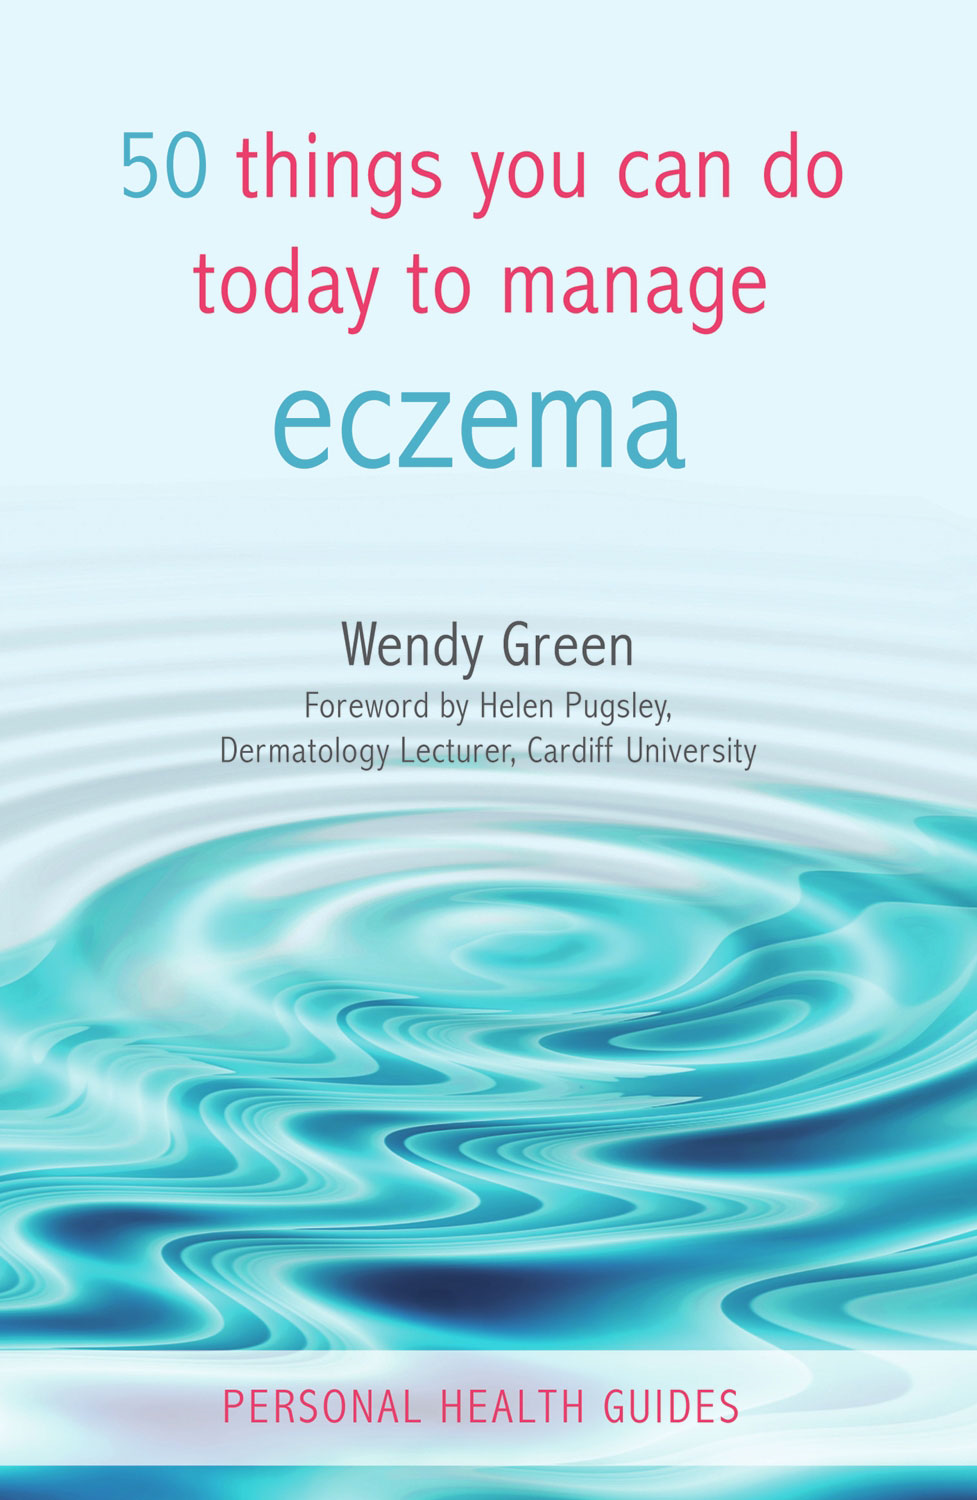 50 Things You Can Do Today to Manage Eczema By: Wendy Green